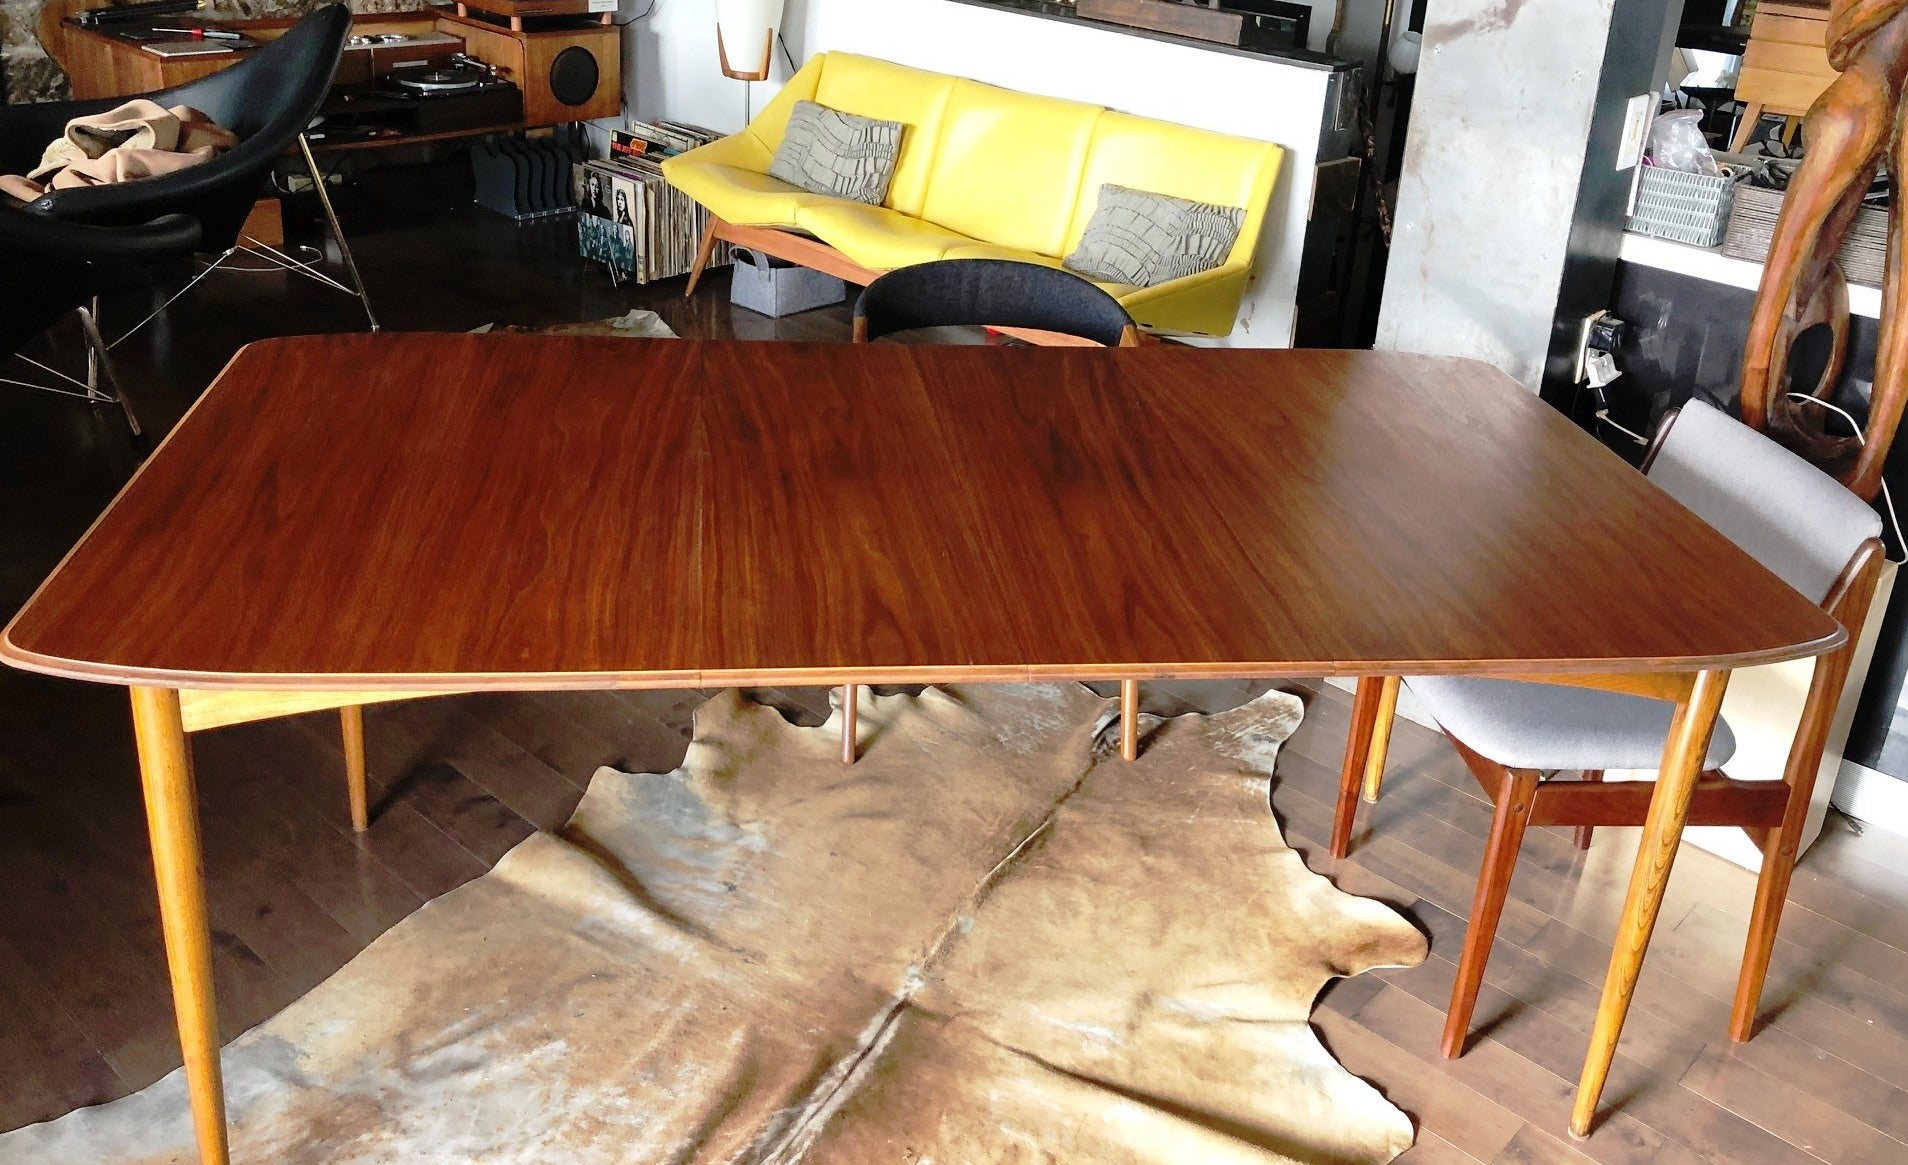 Astounding Refinished Mcm Walnut Dining Table Extendable W 2 Leaves By Deilcraft Perfect 48 72 Download Free Architecture Designs Rallybritishbridgeorg